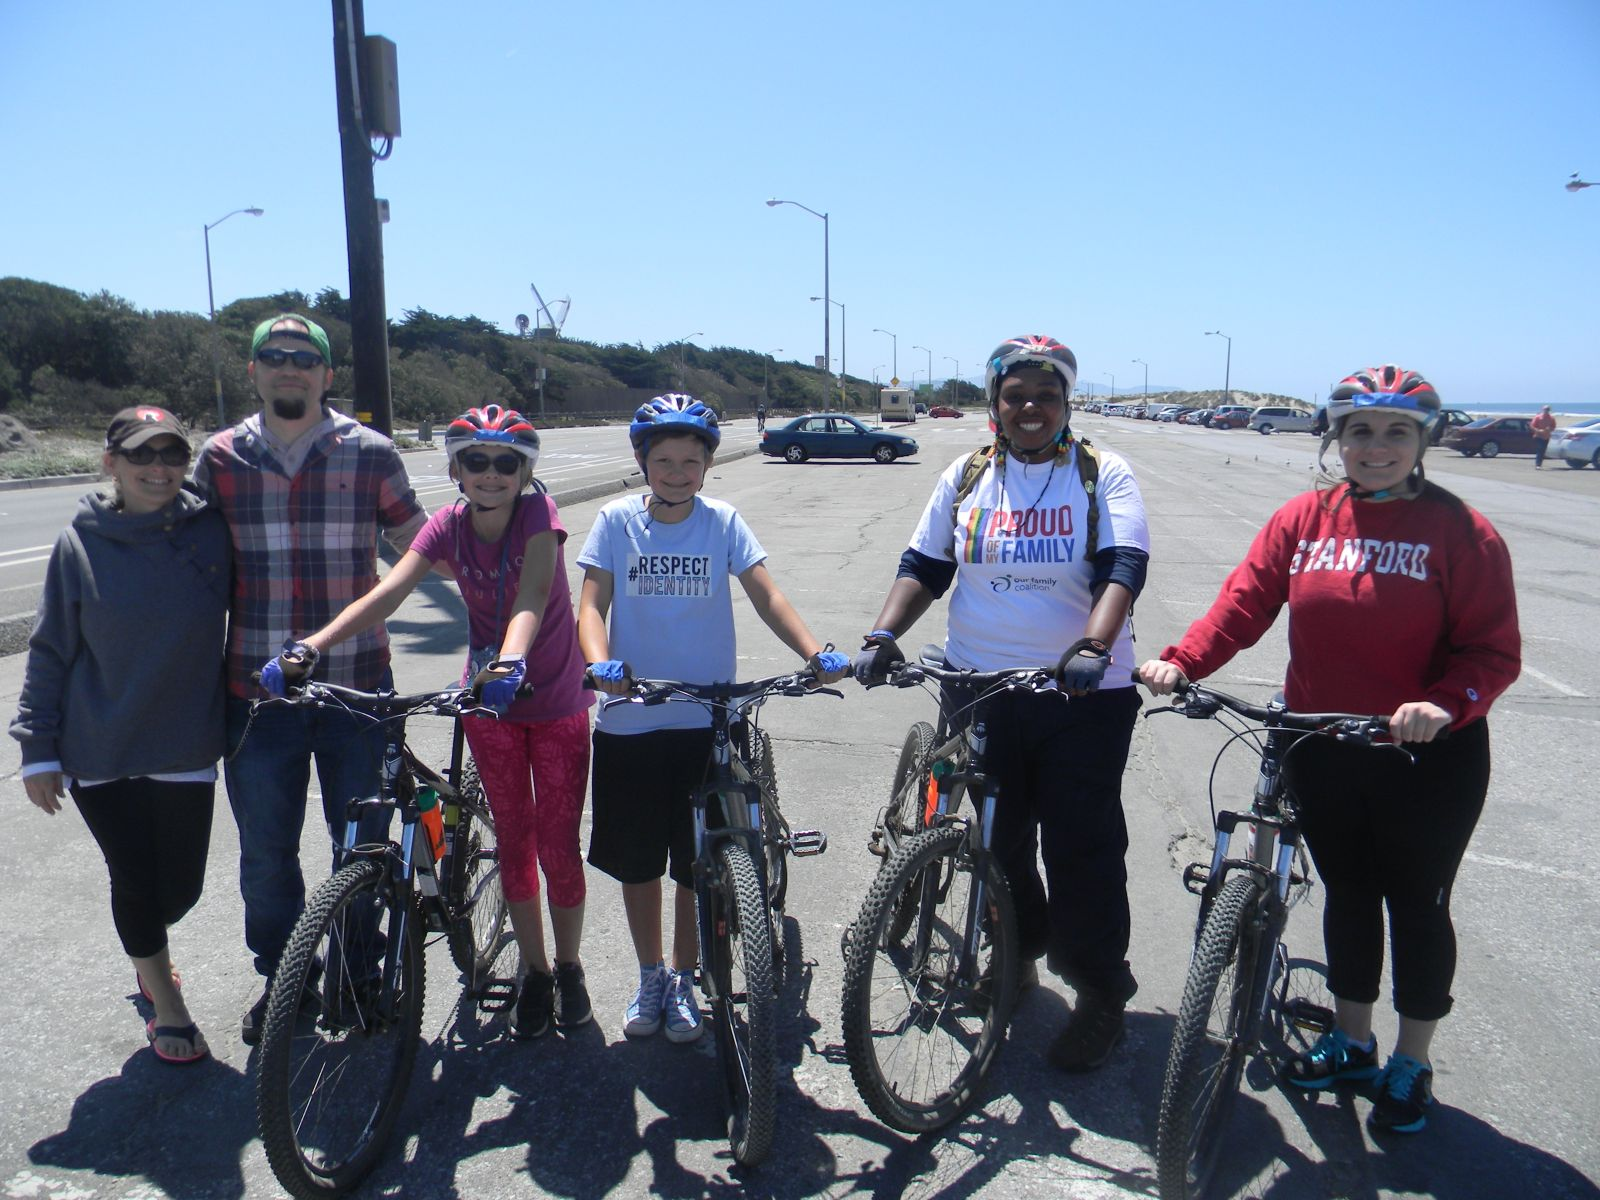 Kids and adults on bikes pose and smile. It's sunny and next to a beach.